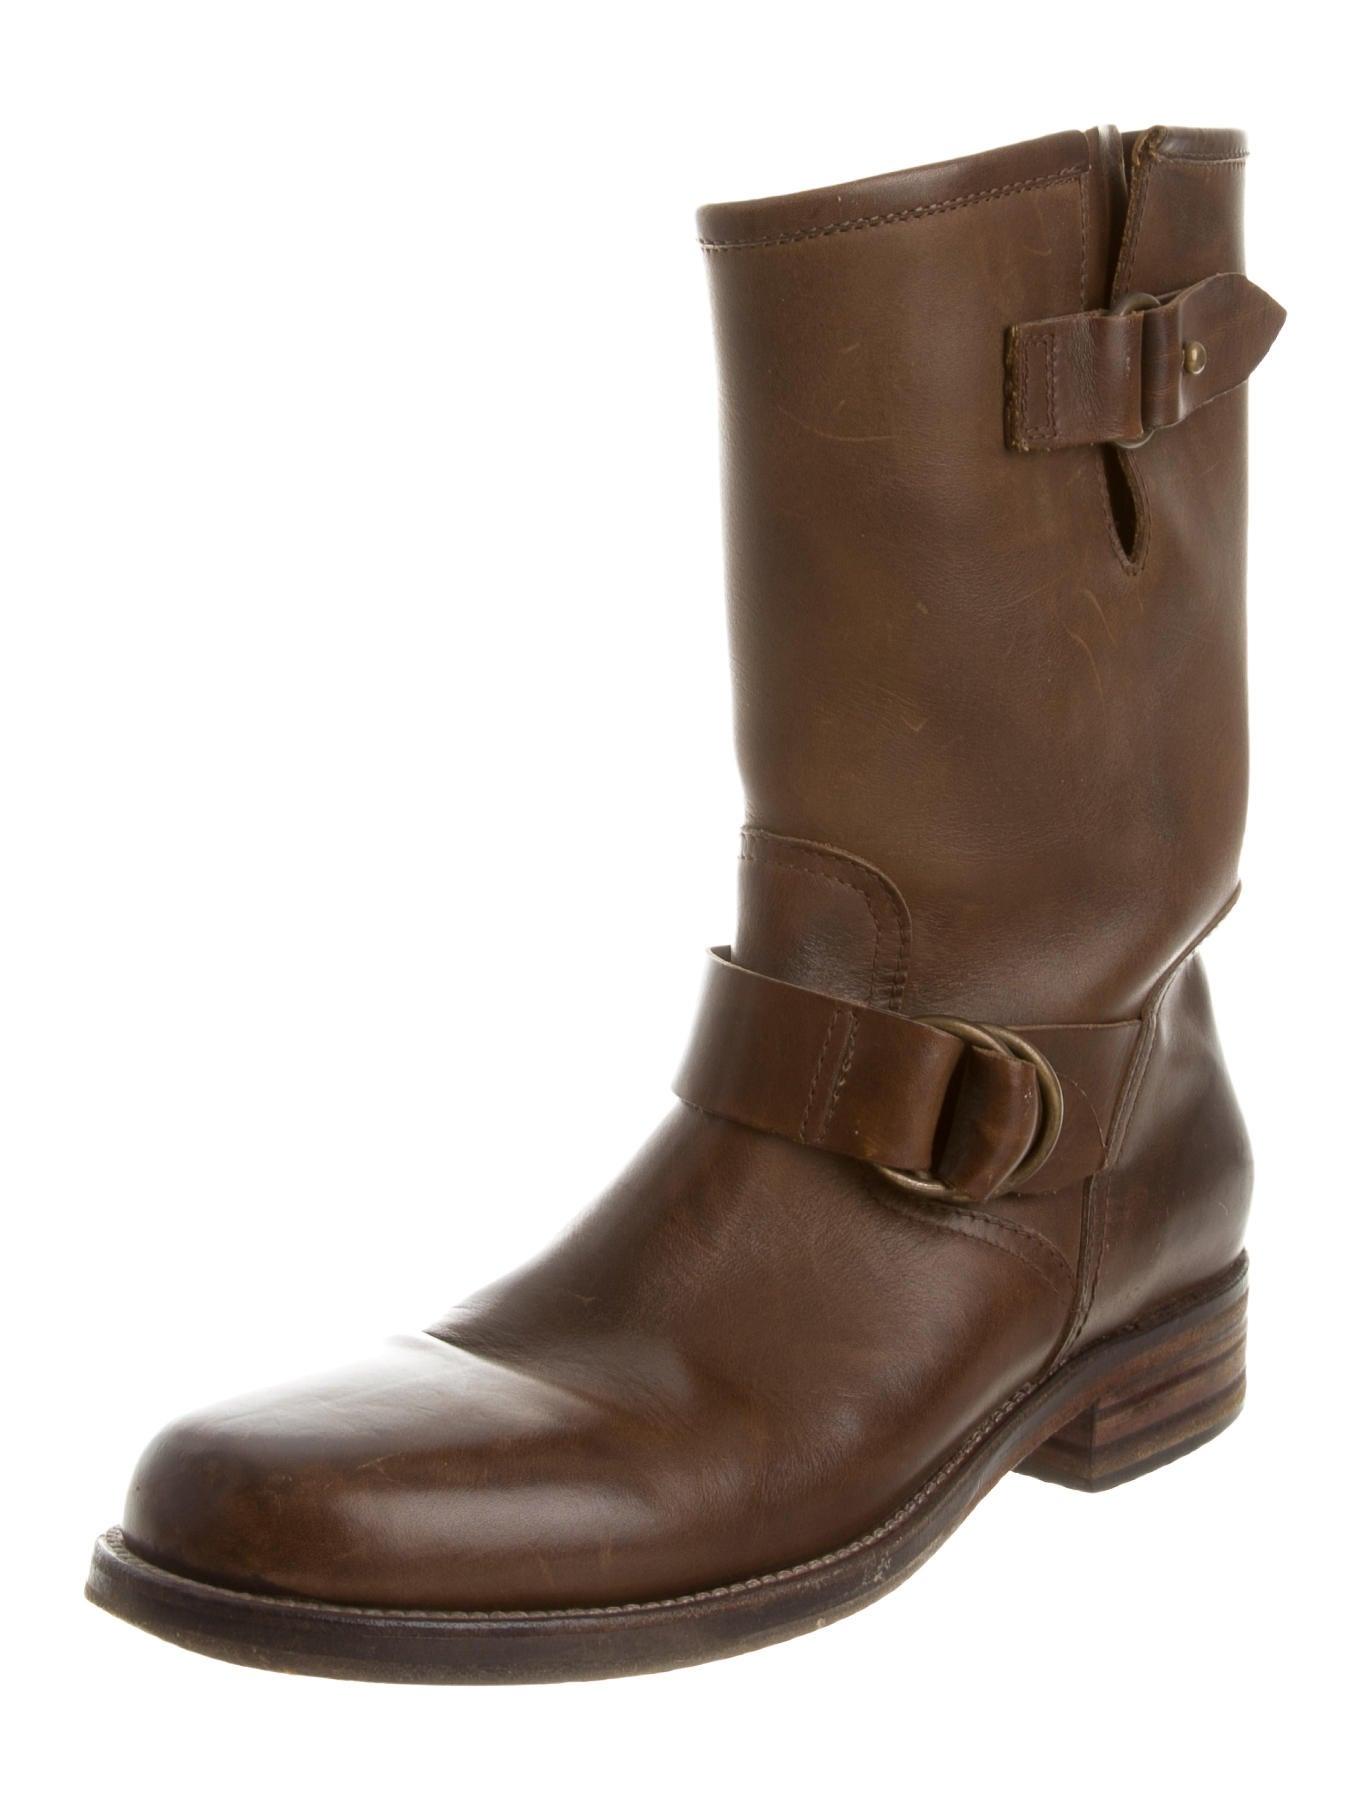 buttero distressed leather boots shoes w6b20017 the